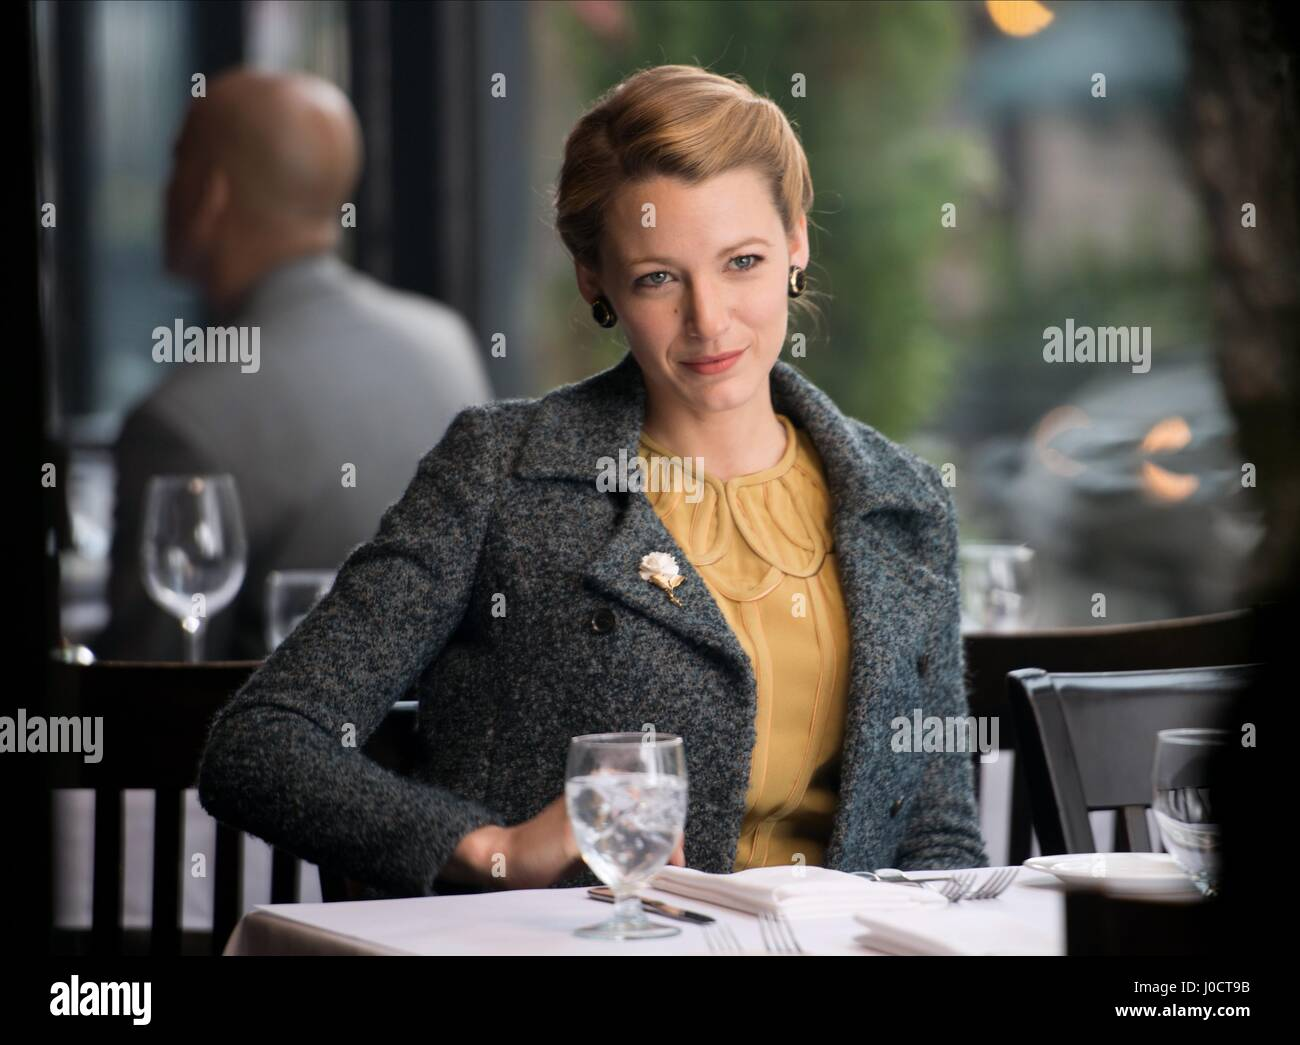 BLAKE LIVELY THE AGE OF ADALINE (2015) - Stock Image